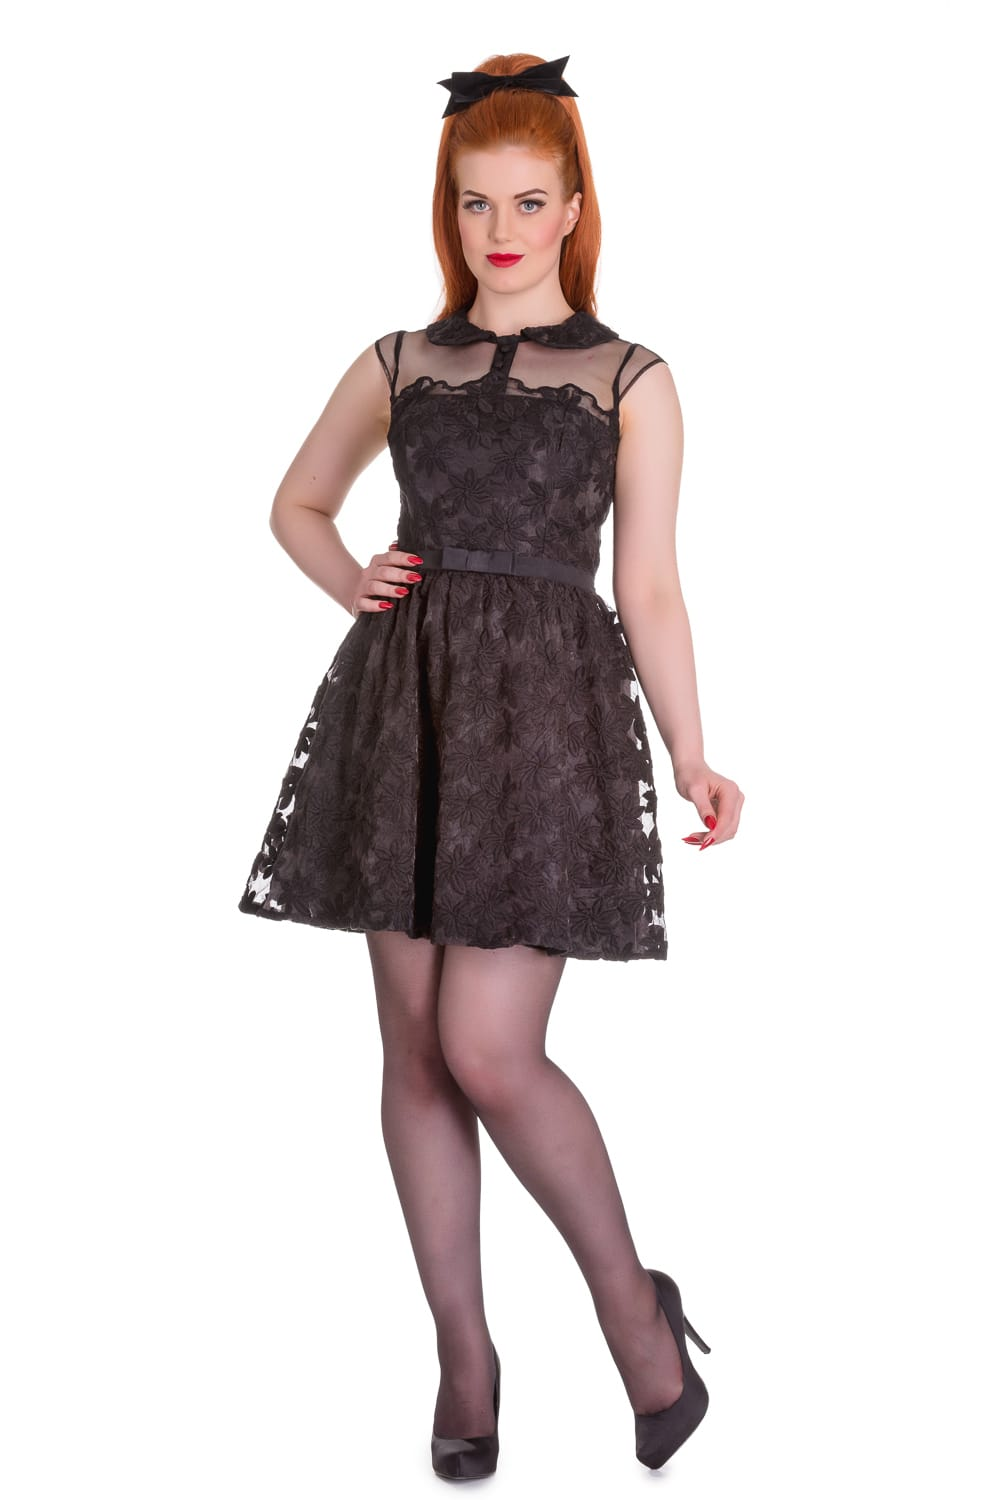 HELL BUNNY SHIRELLE DRESS